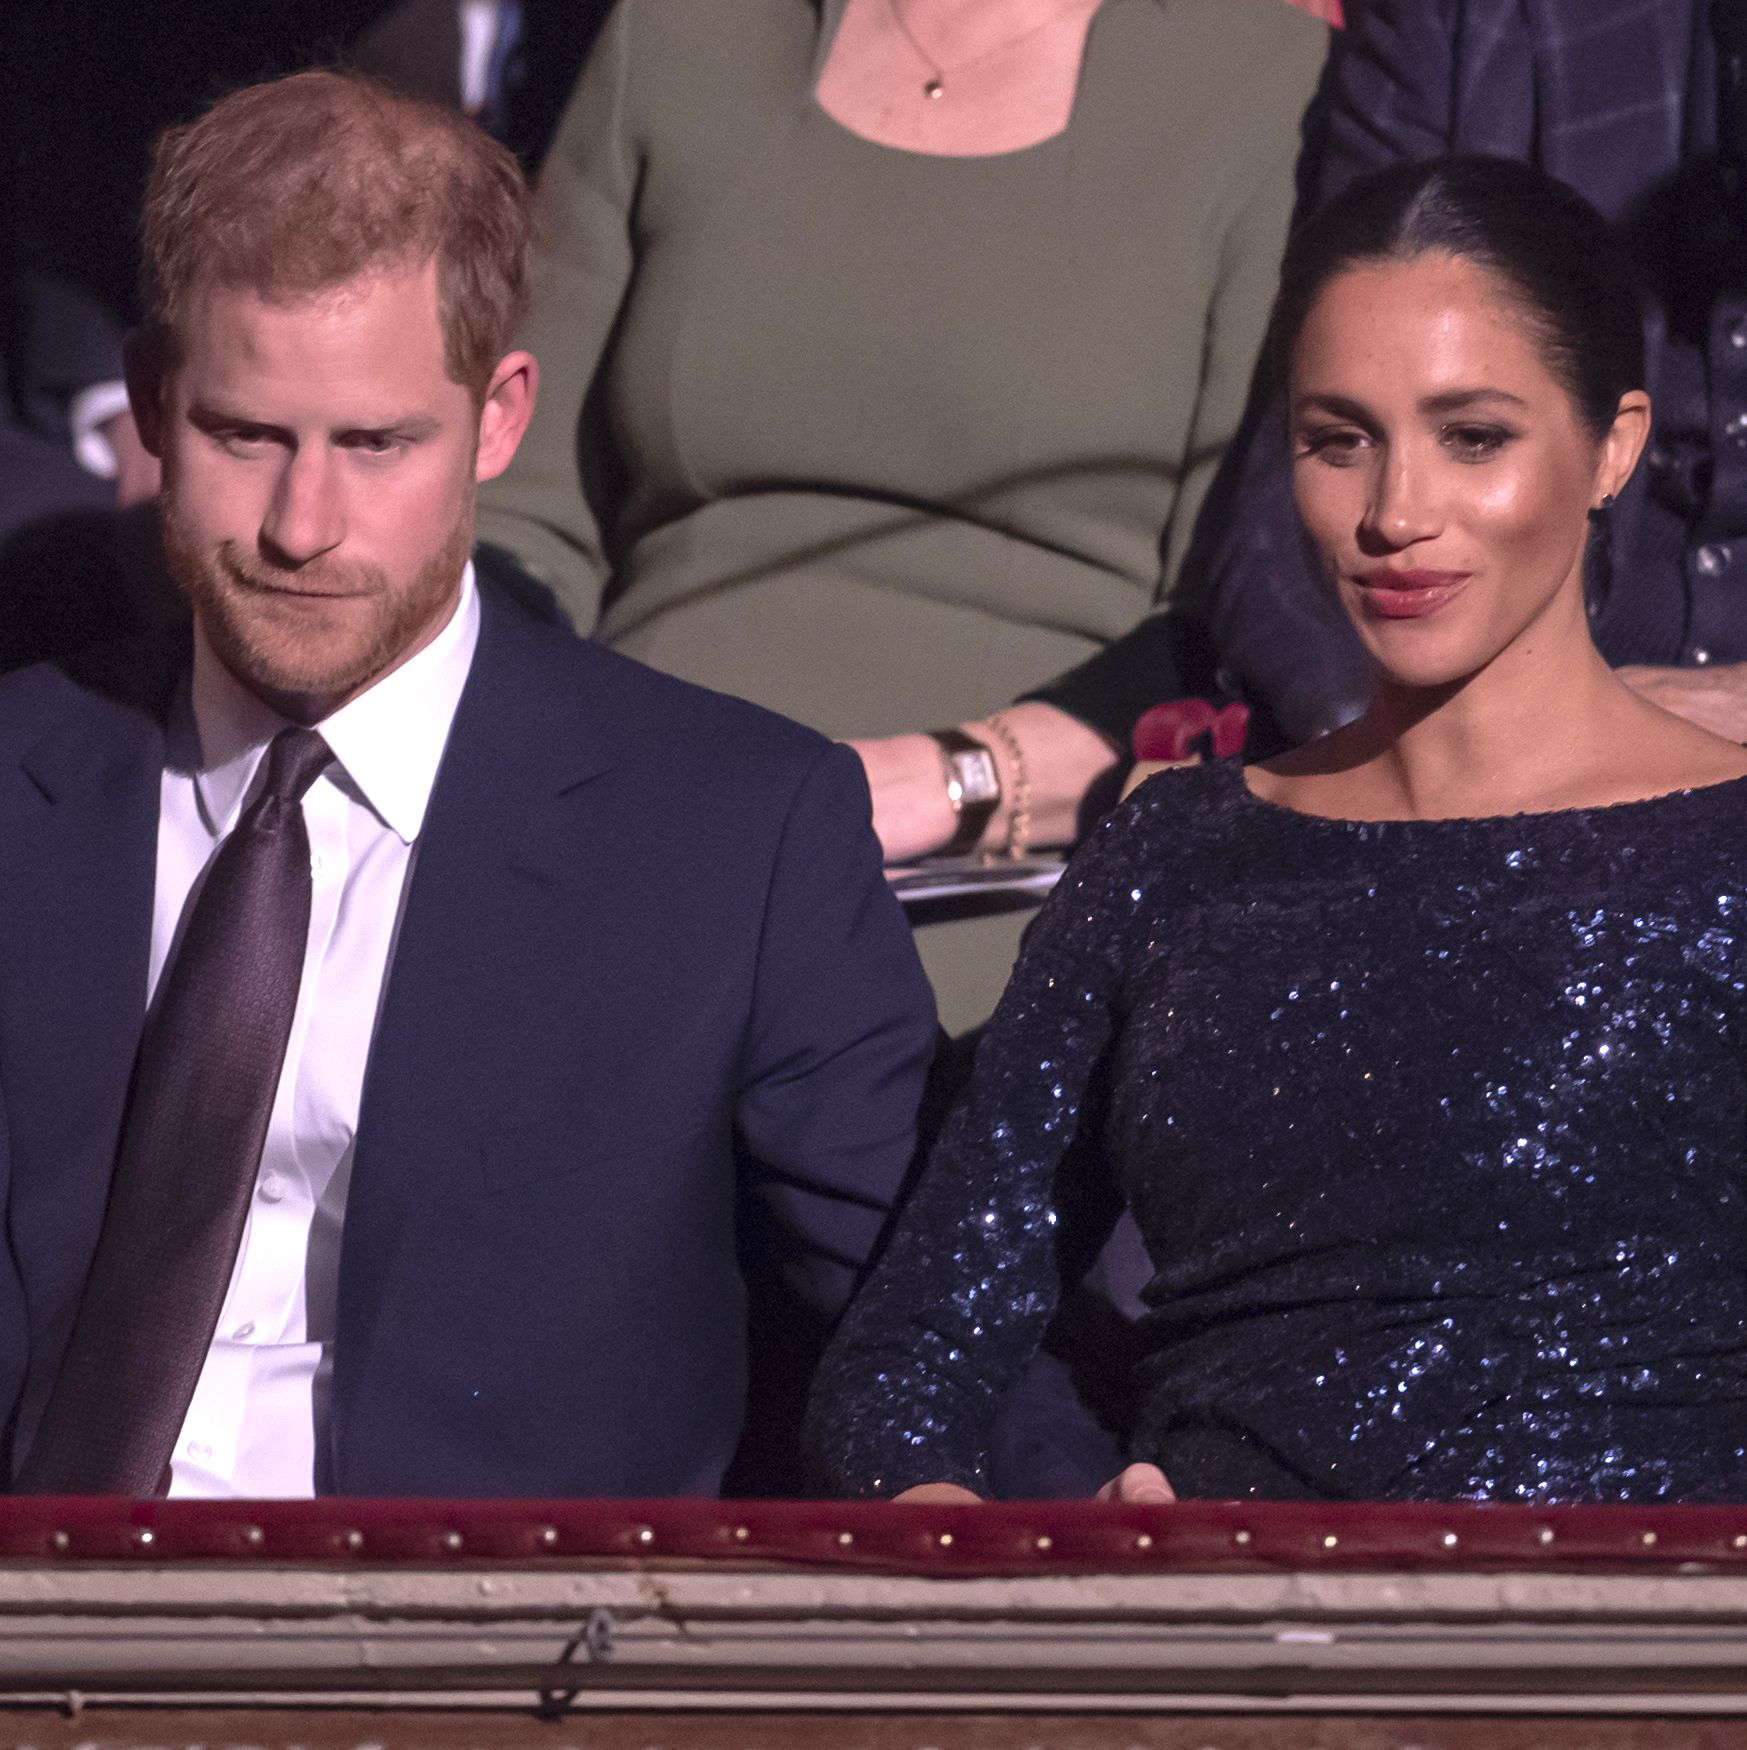 Meghan Markle and Prince Harry Were Caught Having the Most Adorable Secret PDA Moment Last Night